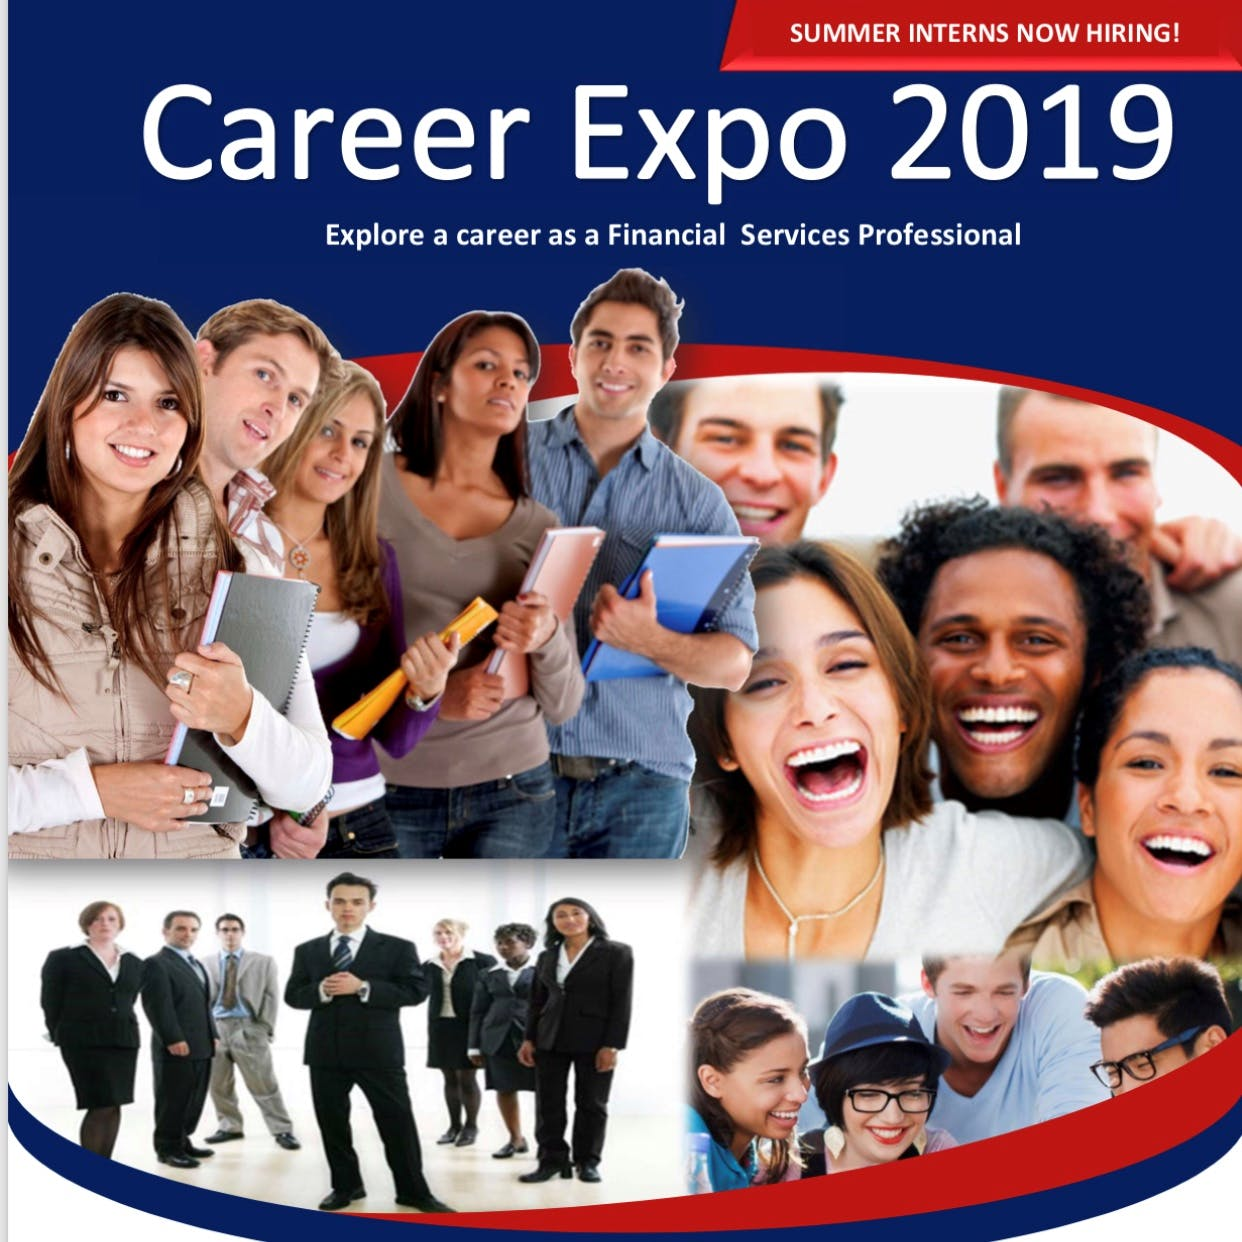 Career Expo 2019 - Explore a career as a Financial Services Professional